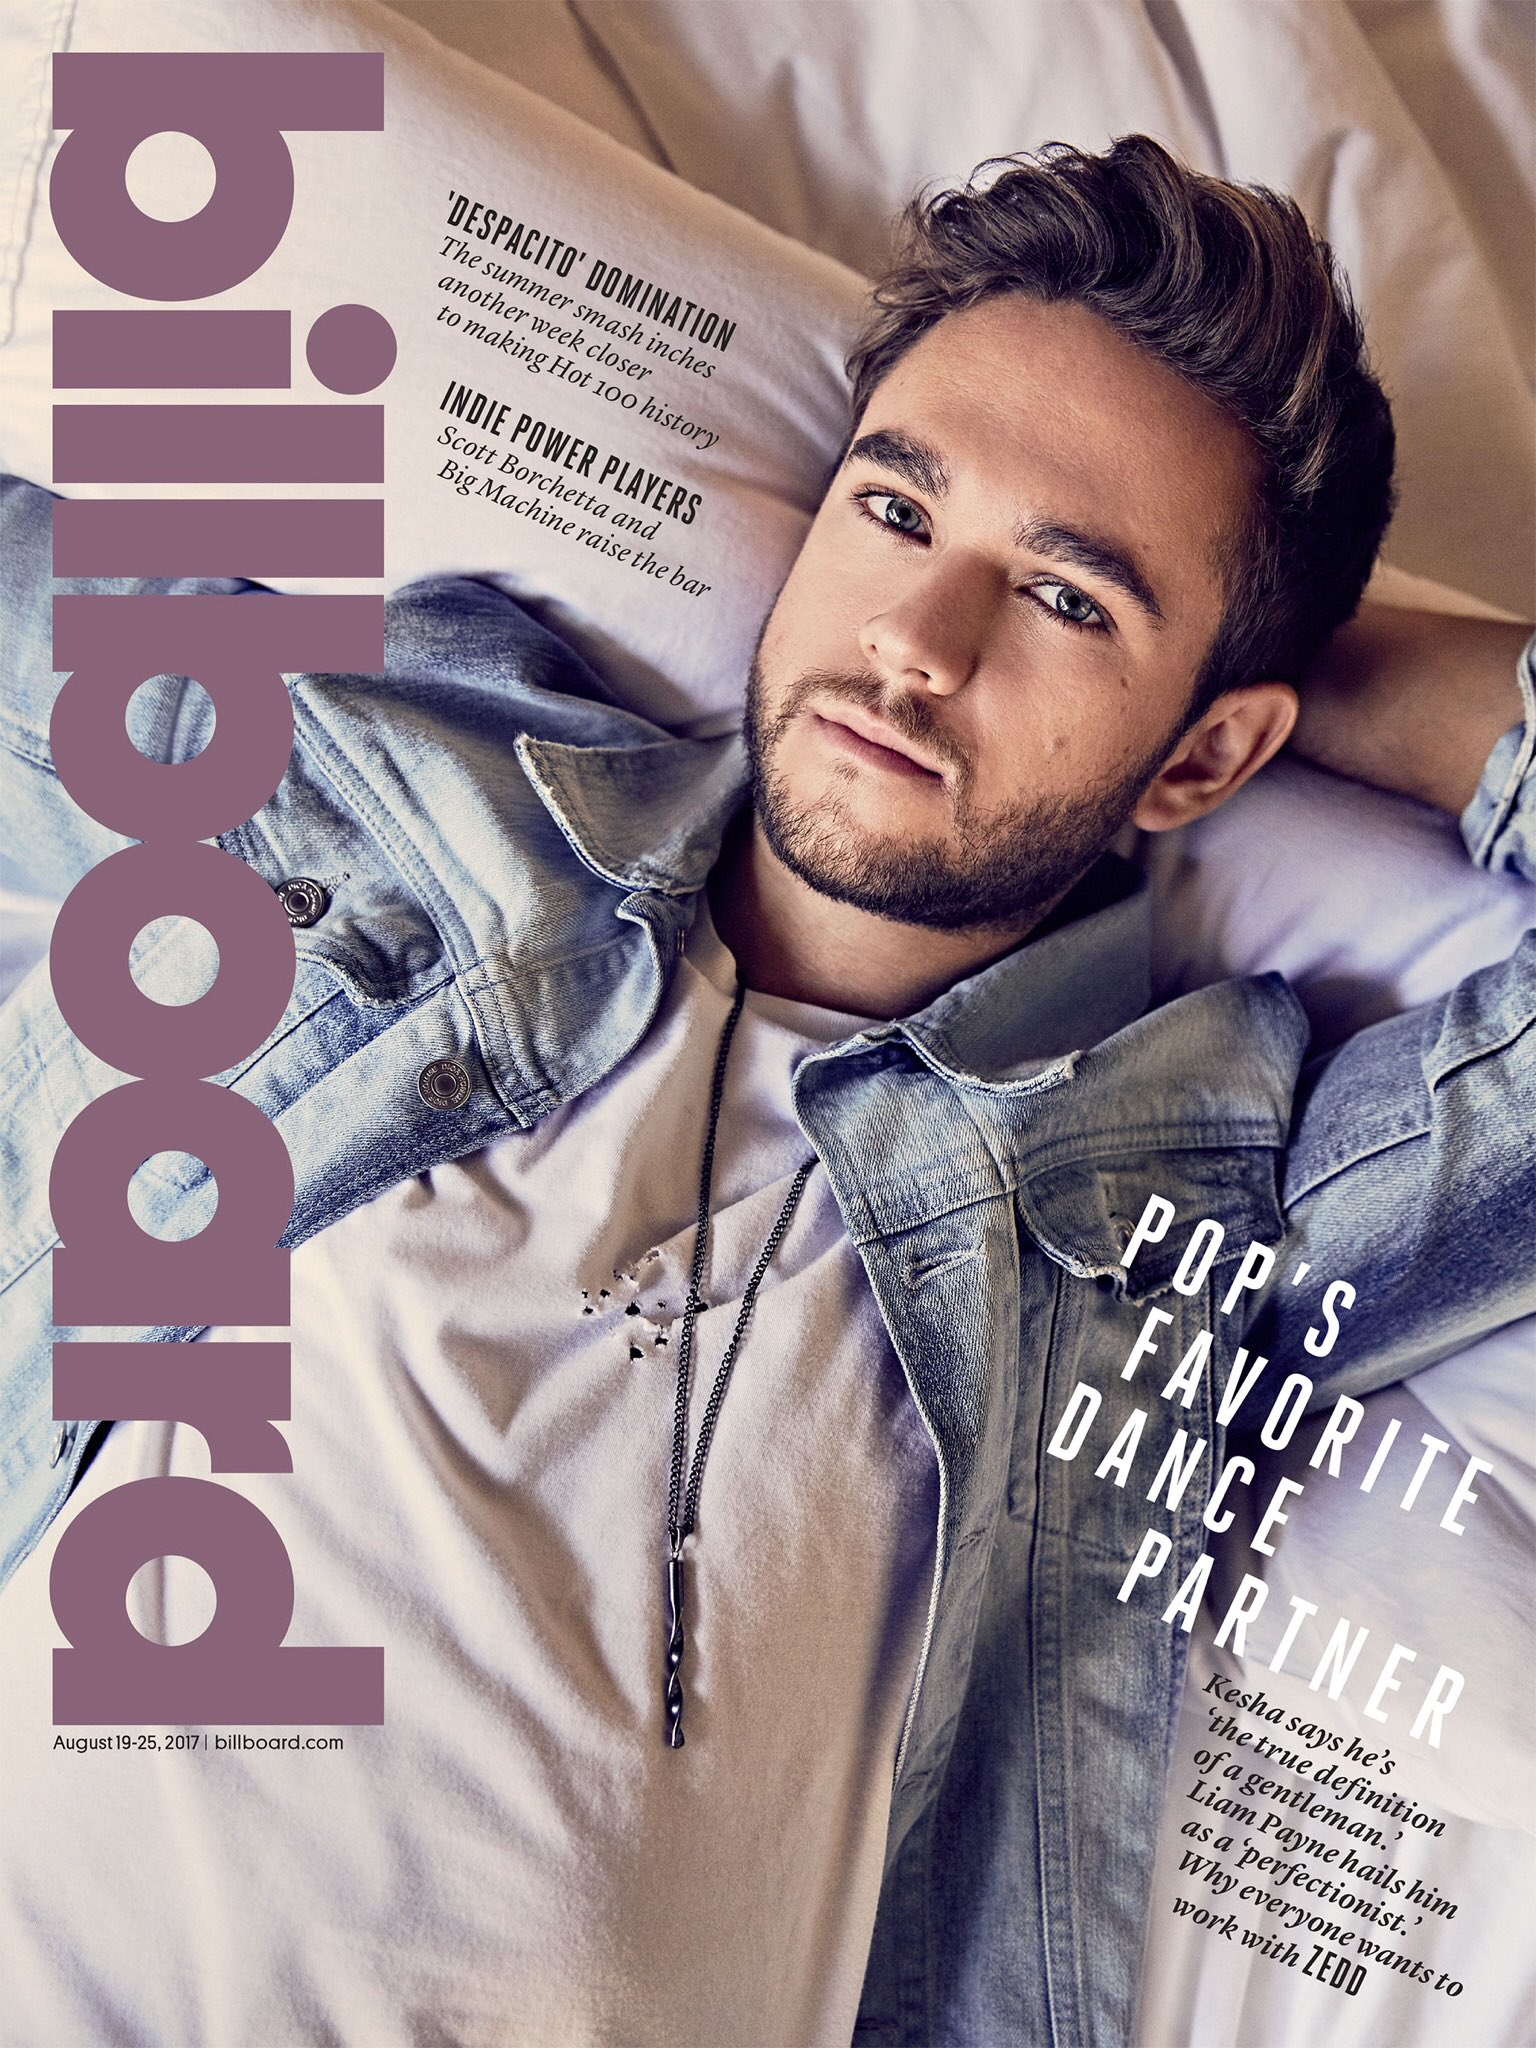 AHHHHH!!!!! I'M ON THE COVER OF BILLBOARD MAGAZINE!!!!!!! Thank you SO MUCH for the honor @billboard !!!! https://t.co/BEplLgi39D